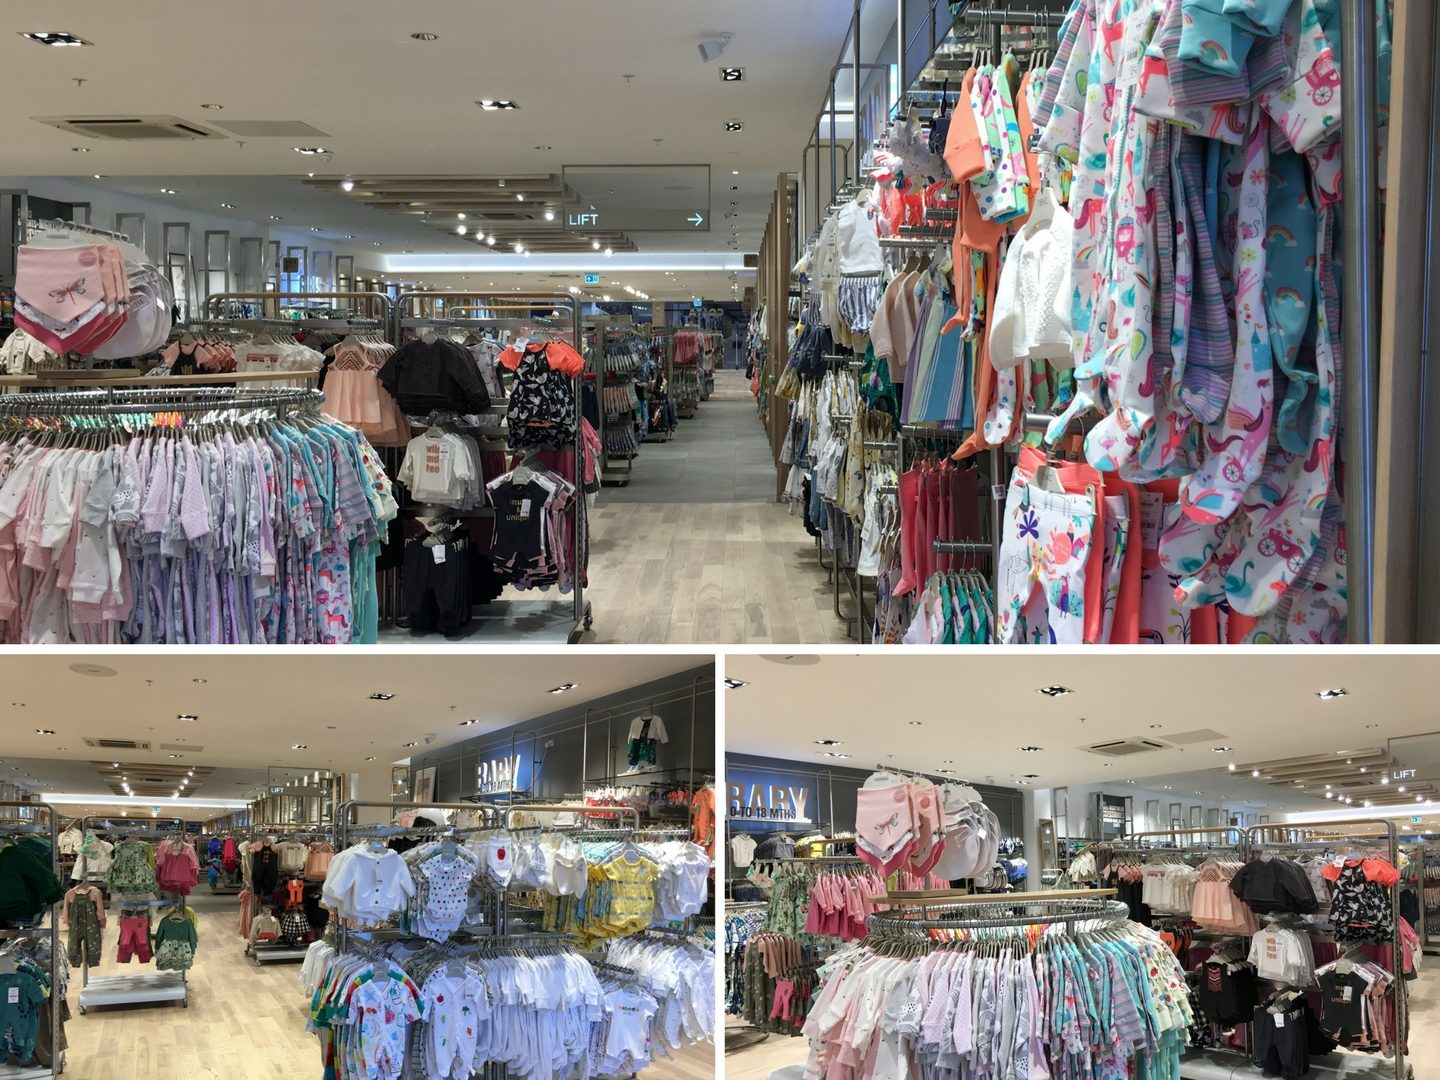 Next children's wear, next childrenswear, kid's clothes, baby sleepsuits, Next Lakeside, Next intu Lakeside